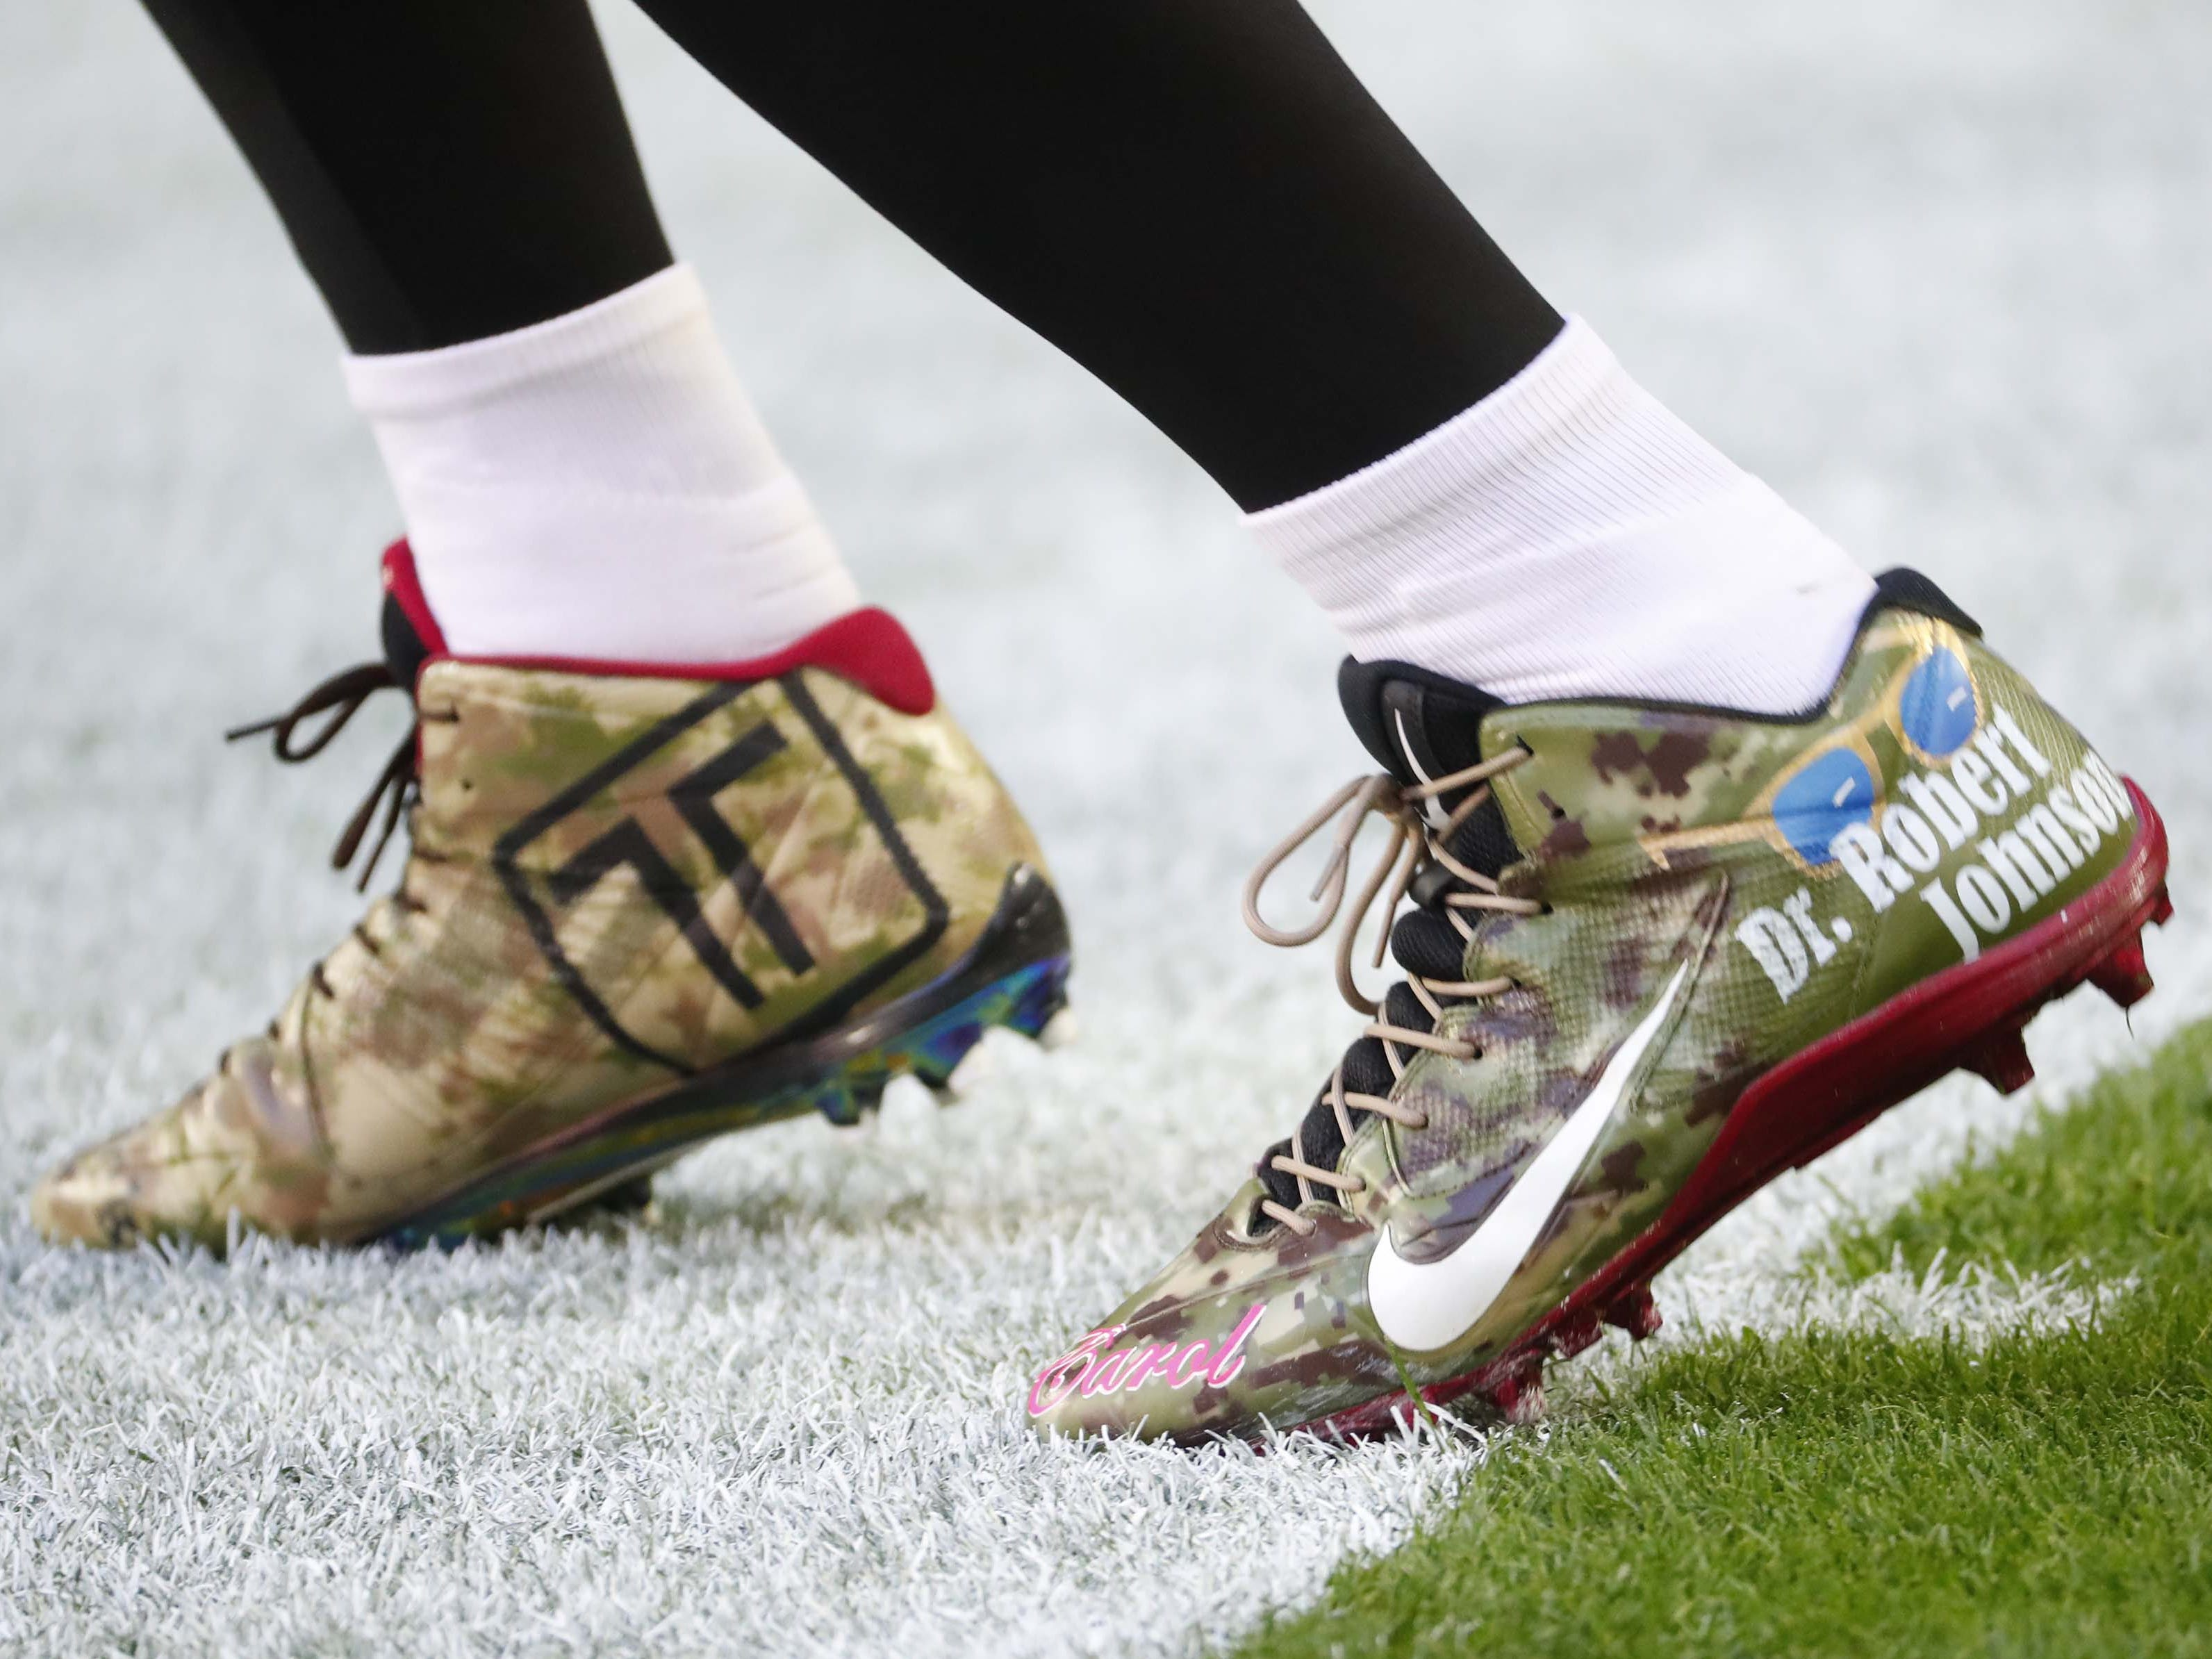 Arizona Cardinals wide receiver Larry Fitzgerald (11) wears cleats as part of the NFL's My Cause My Cleats campaign before playing against the Detroit Lions December 9.